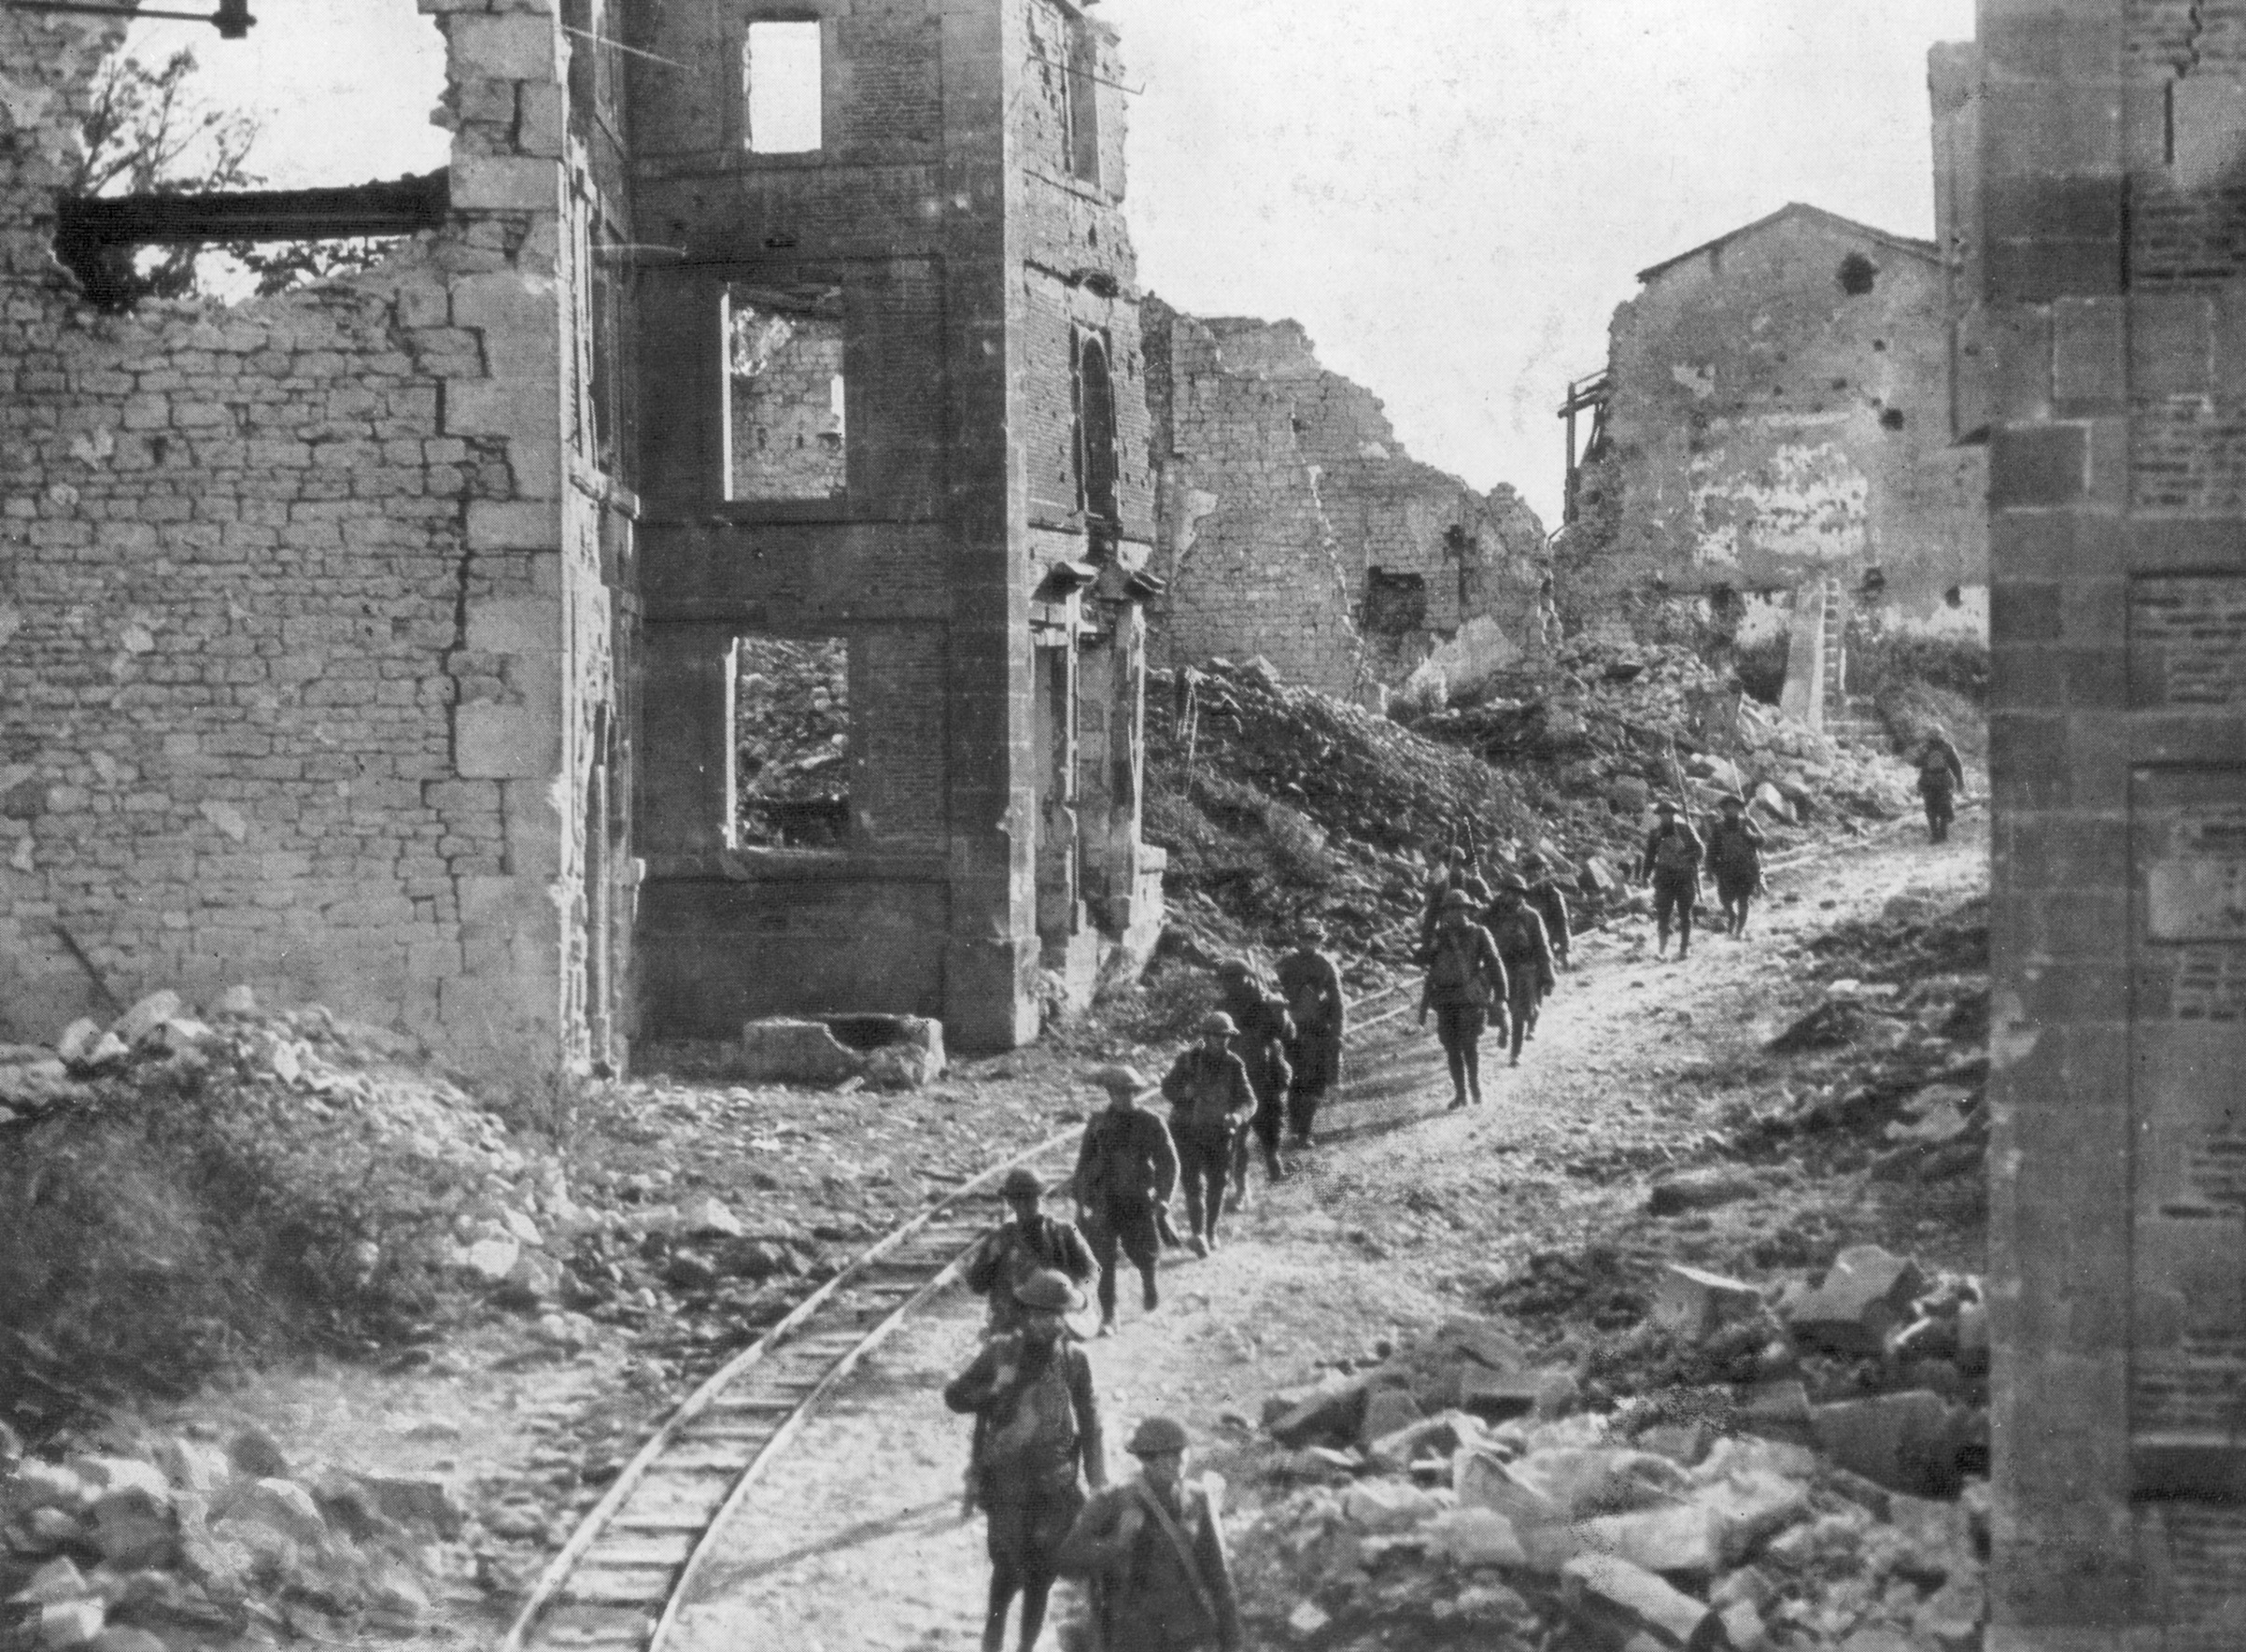 American soldiers passing through the ruins of Varennes, Meuse-Argonne Offensive, France, 1918.